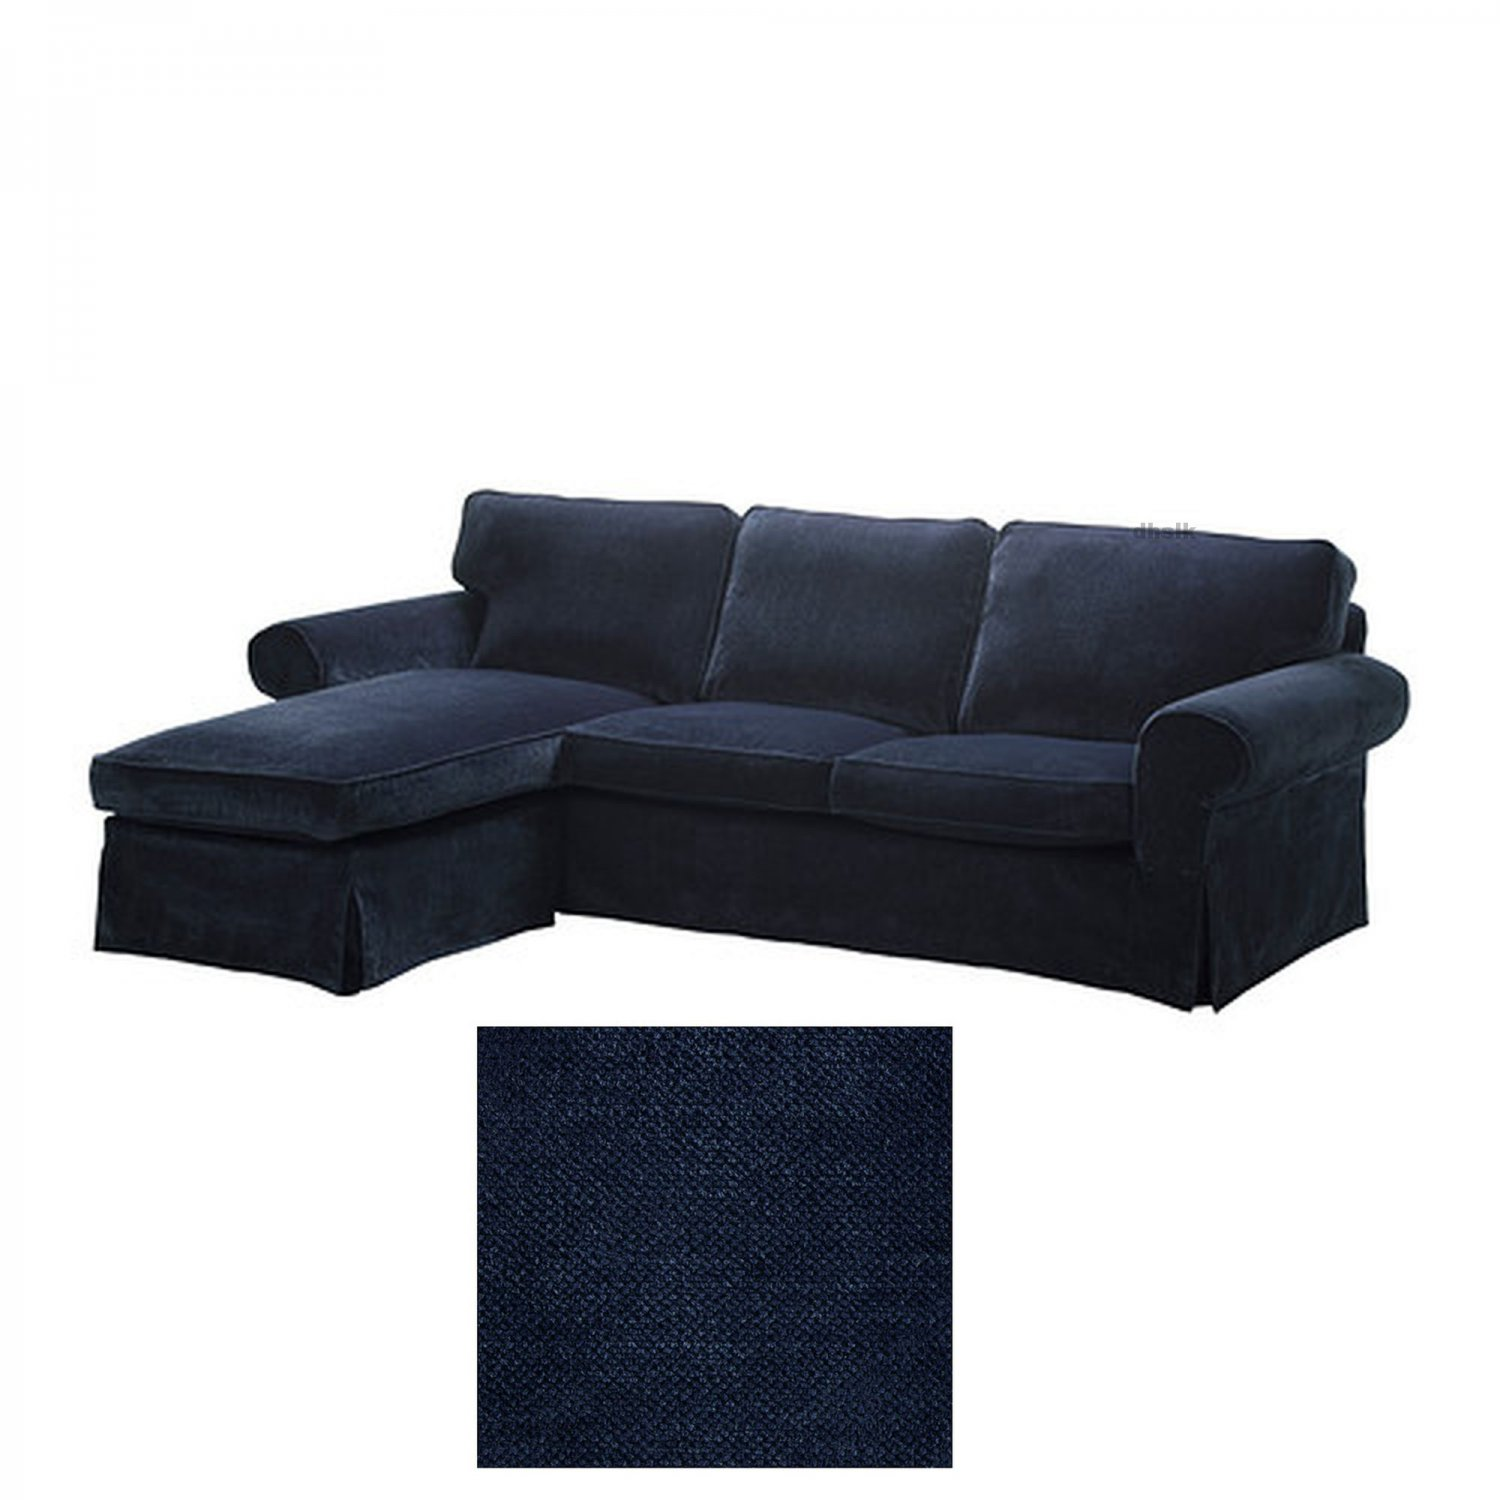 ikea karlanda sofa covers uk semi circle singapore ektorp loveseat with chaise cover slipcover